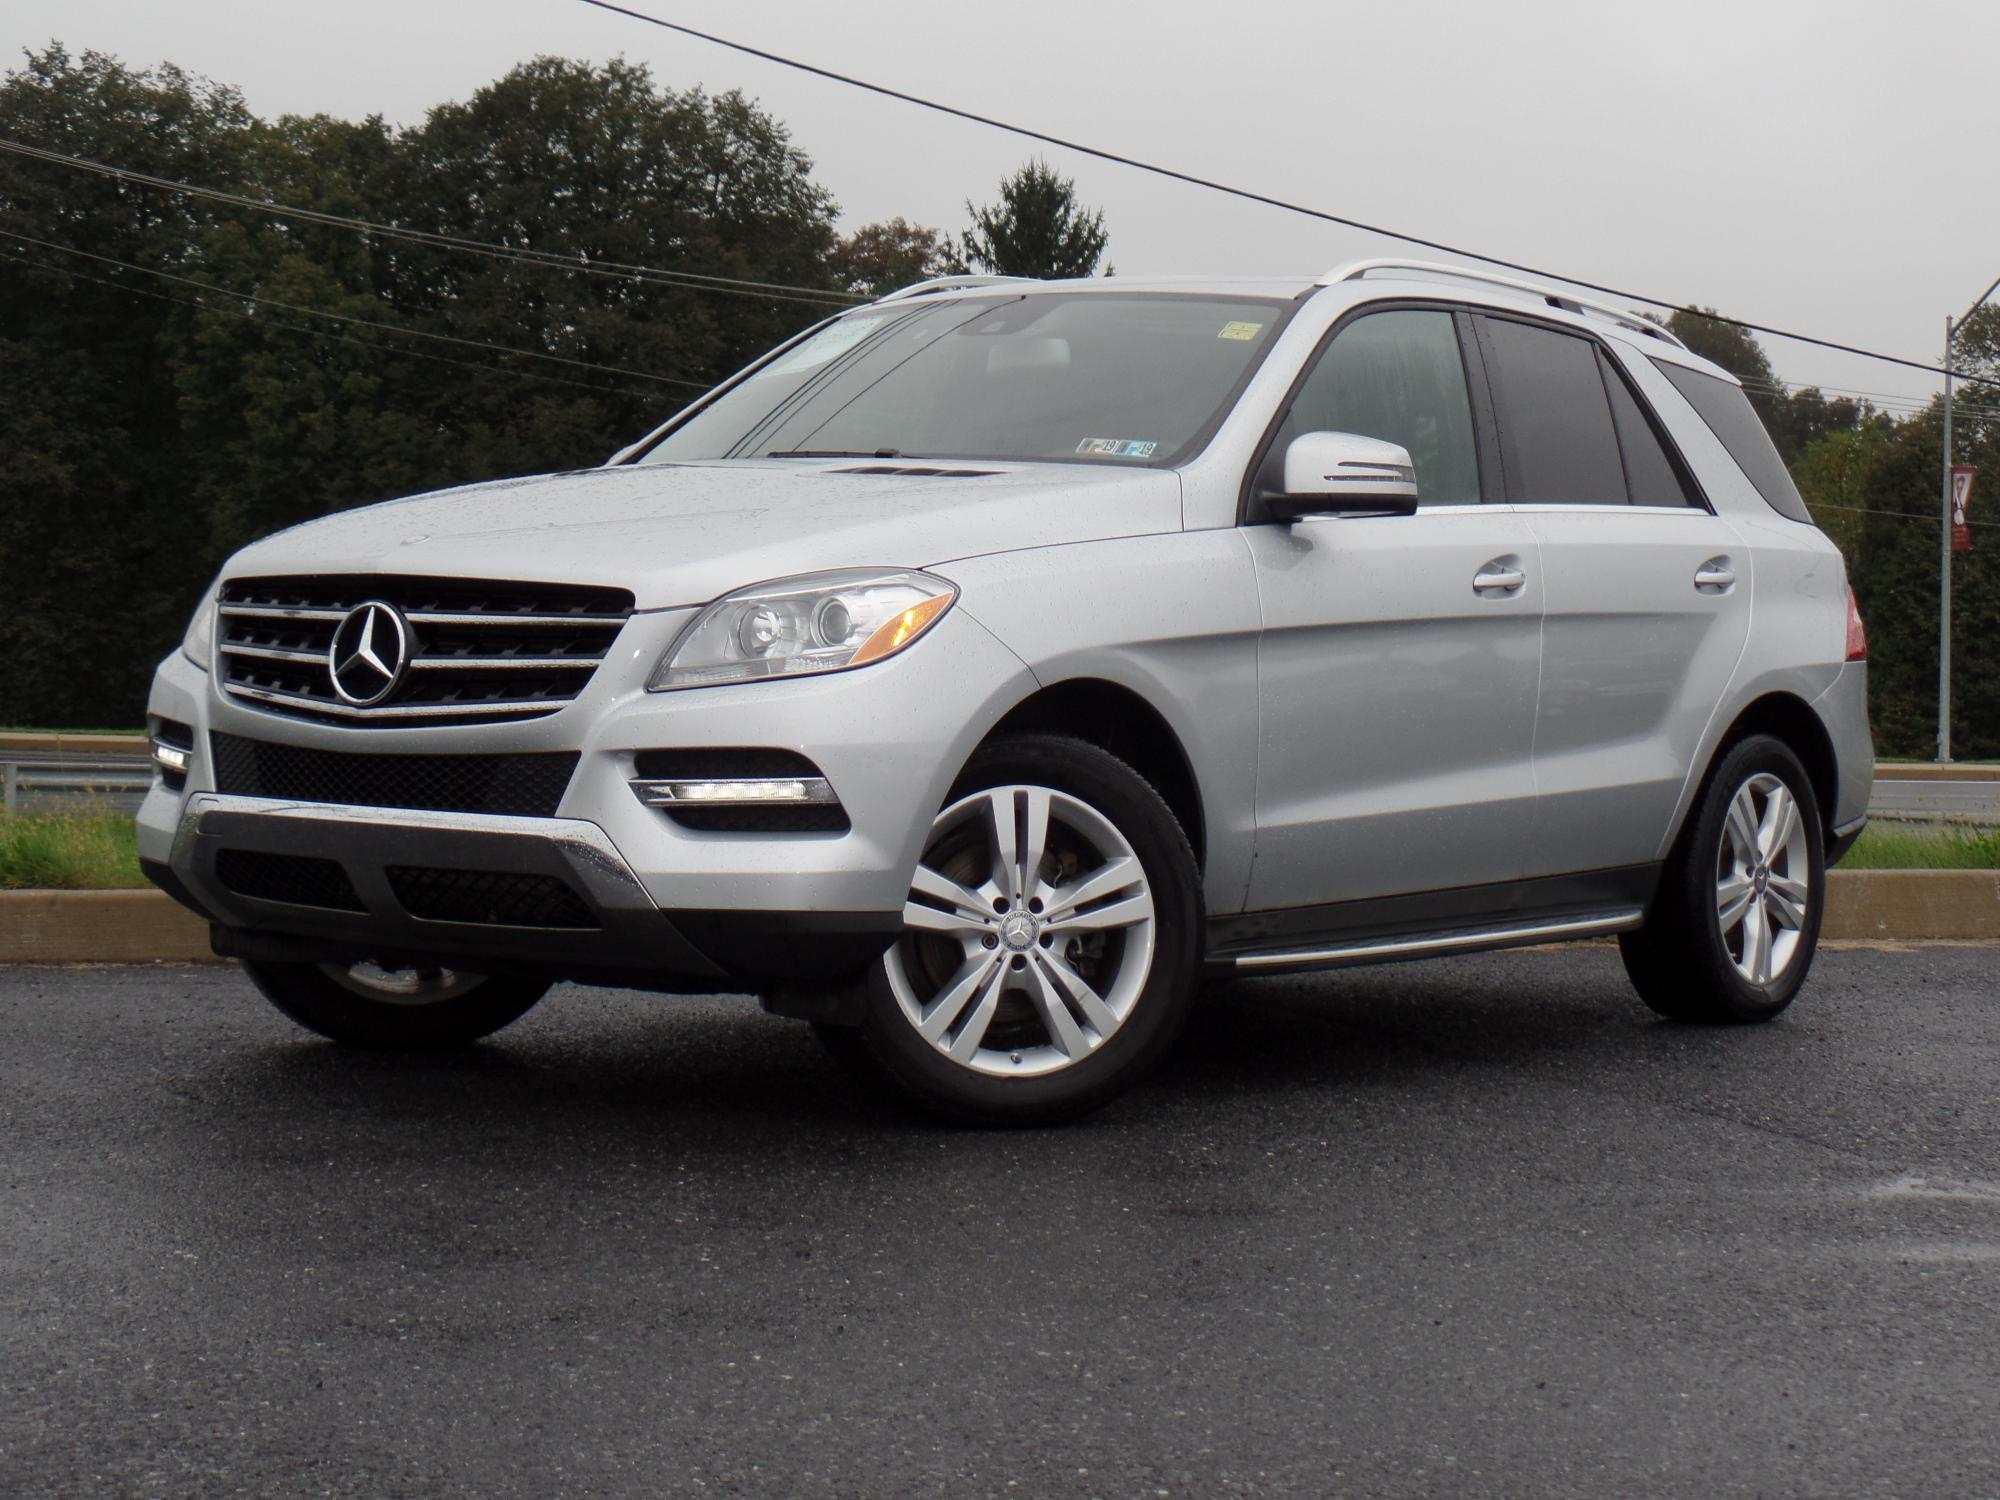 9-25-2018_2013_Mercedes-Benz_ML350_138910__1_.JPG